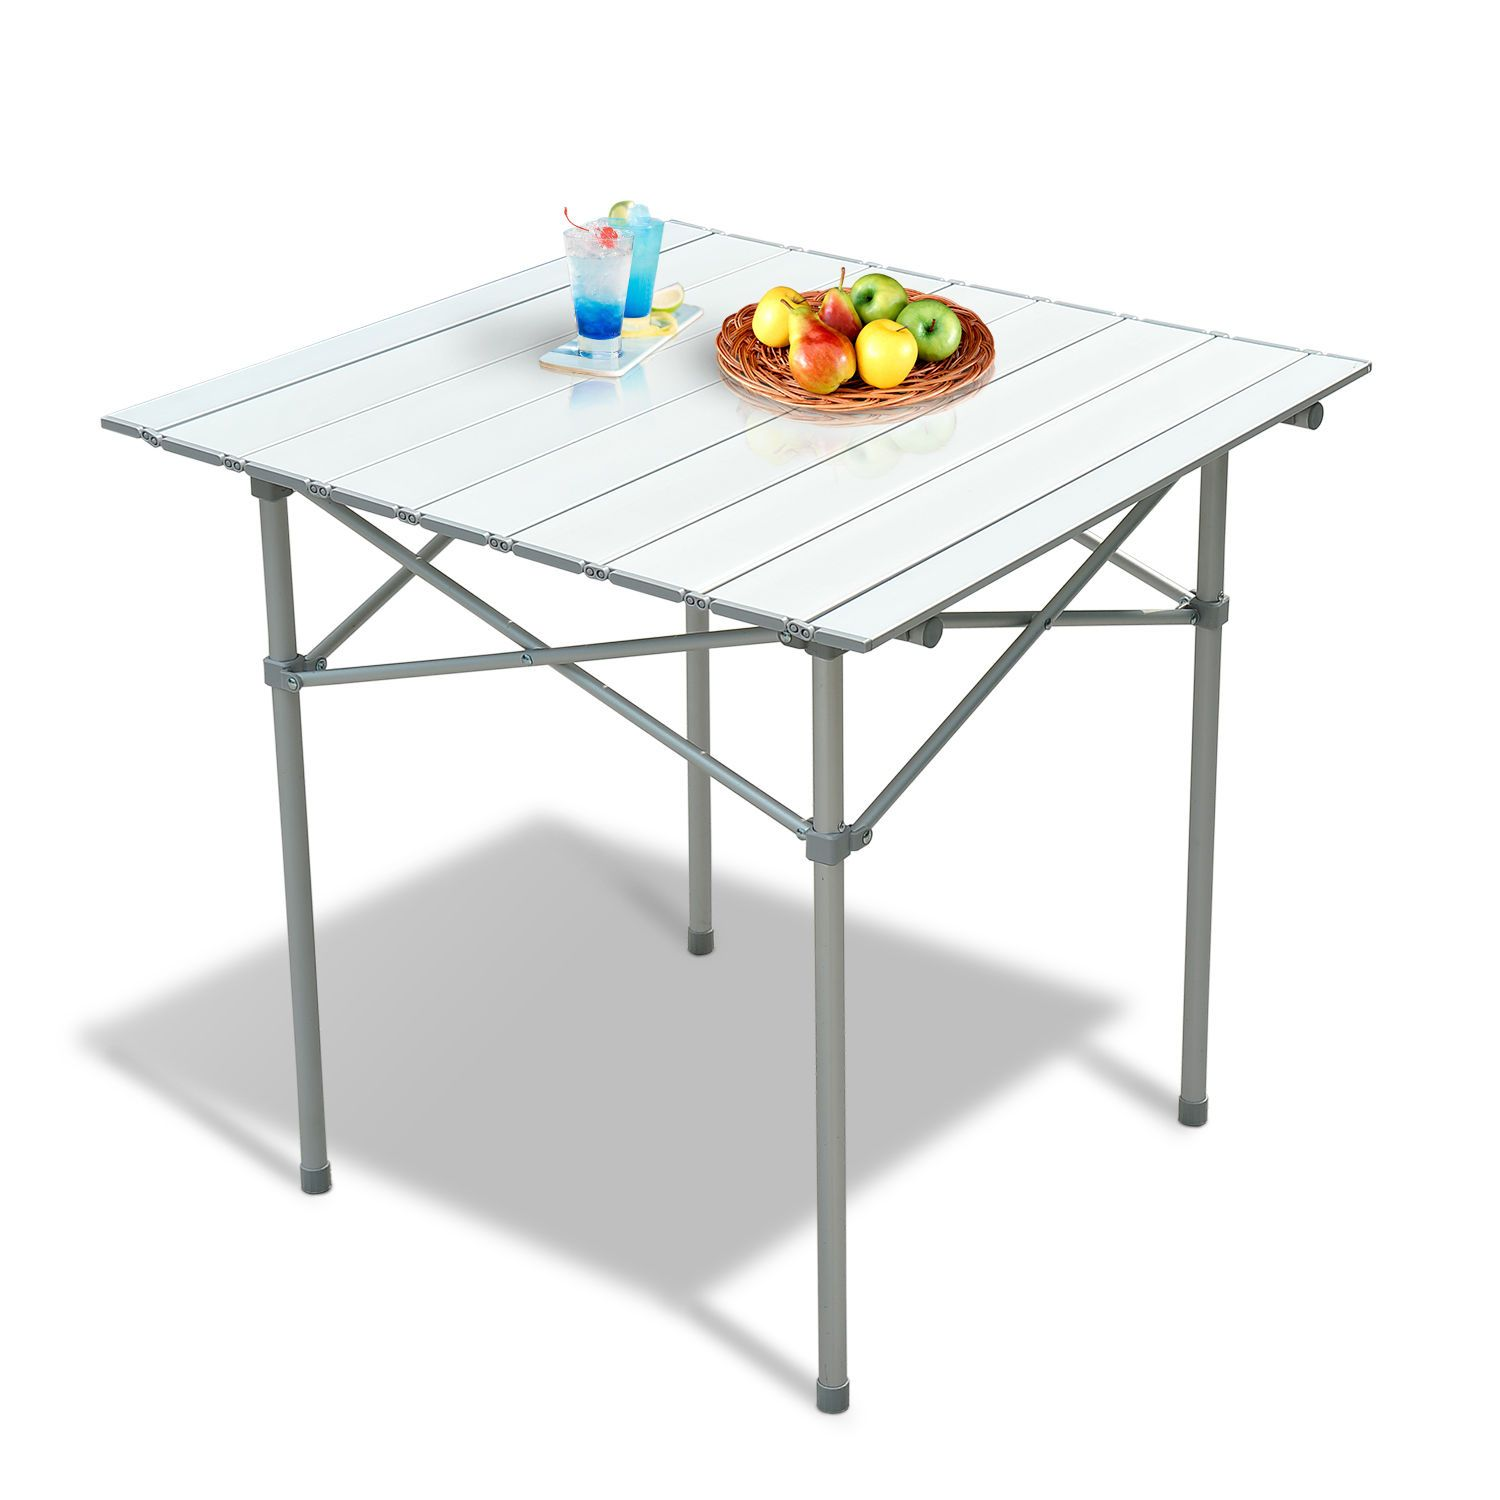 28 x 28 square aluminum picnic table roll up portable. Black Bedroom Furniture Sets. Home Design Ideas